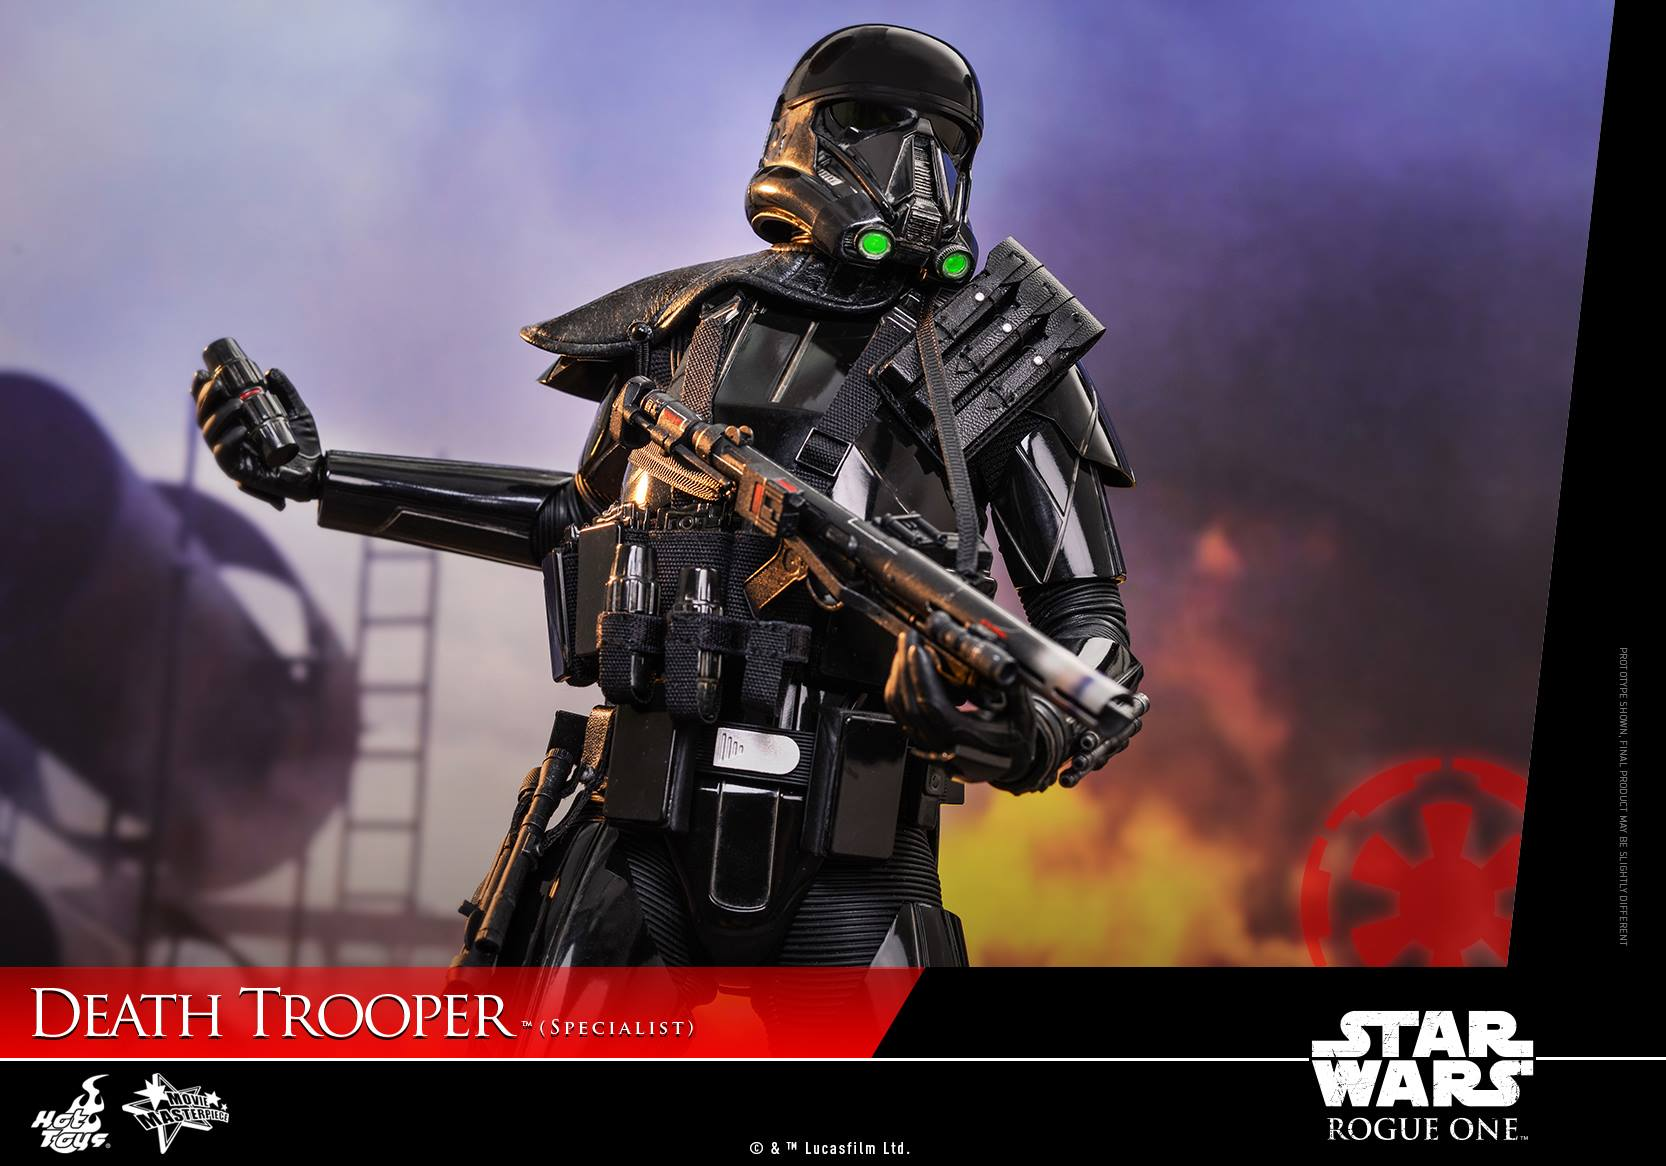 Hot Toys Death Trooper Specialist (9)